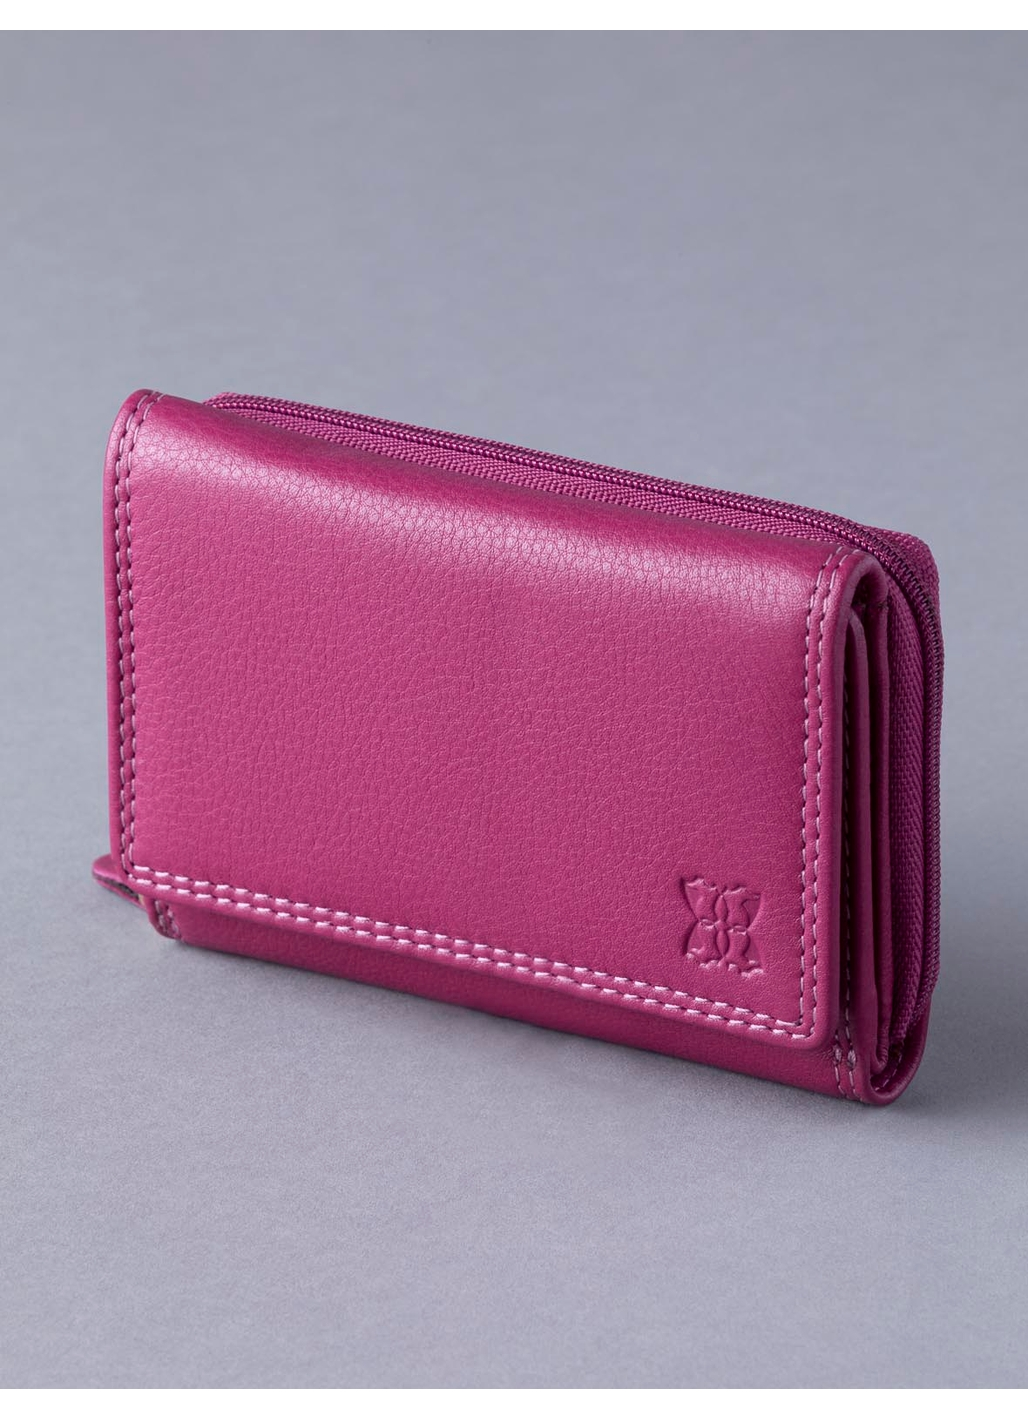 12.5cm Leather Purse in Cranberry Pink